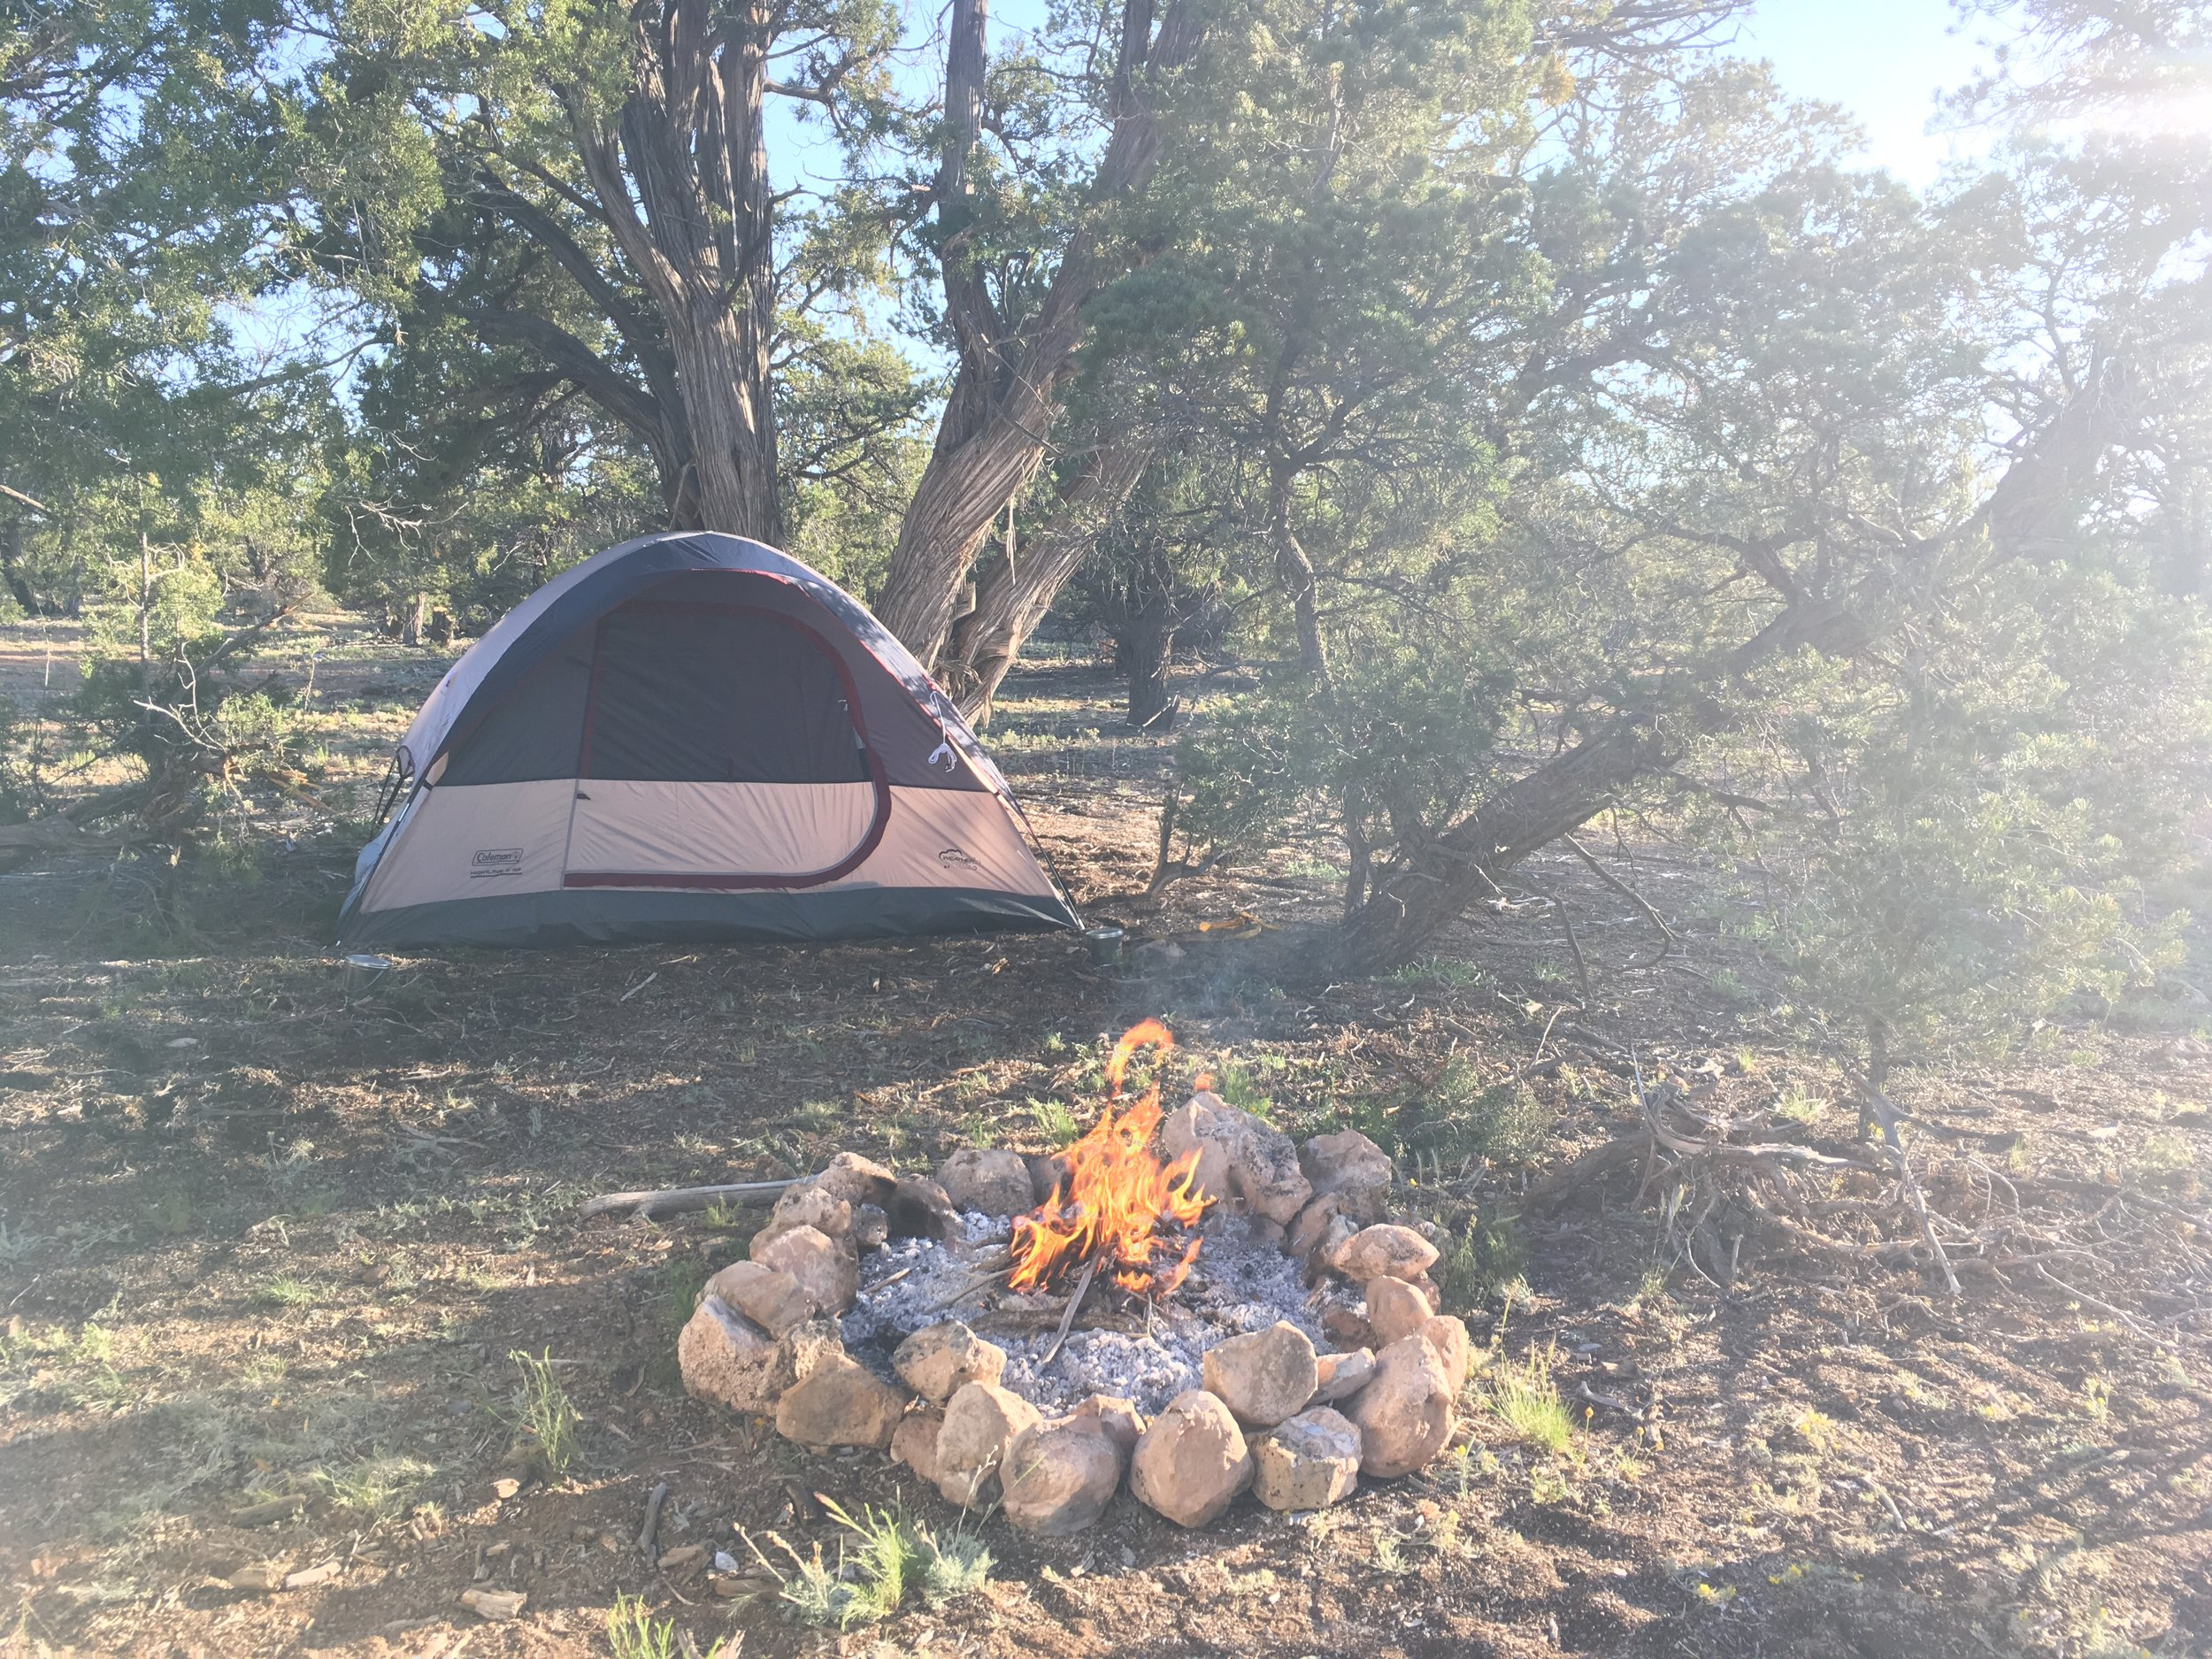 Early morning at the Grand Canyon campsite